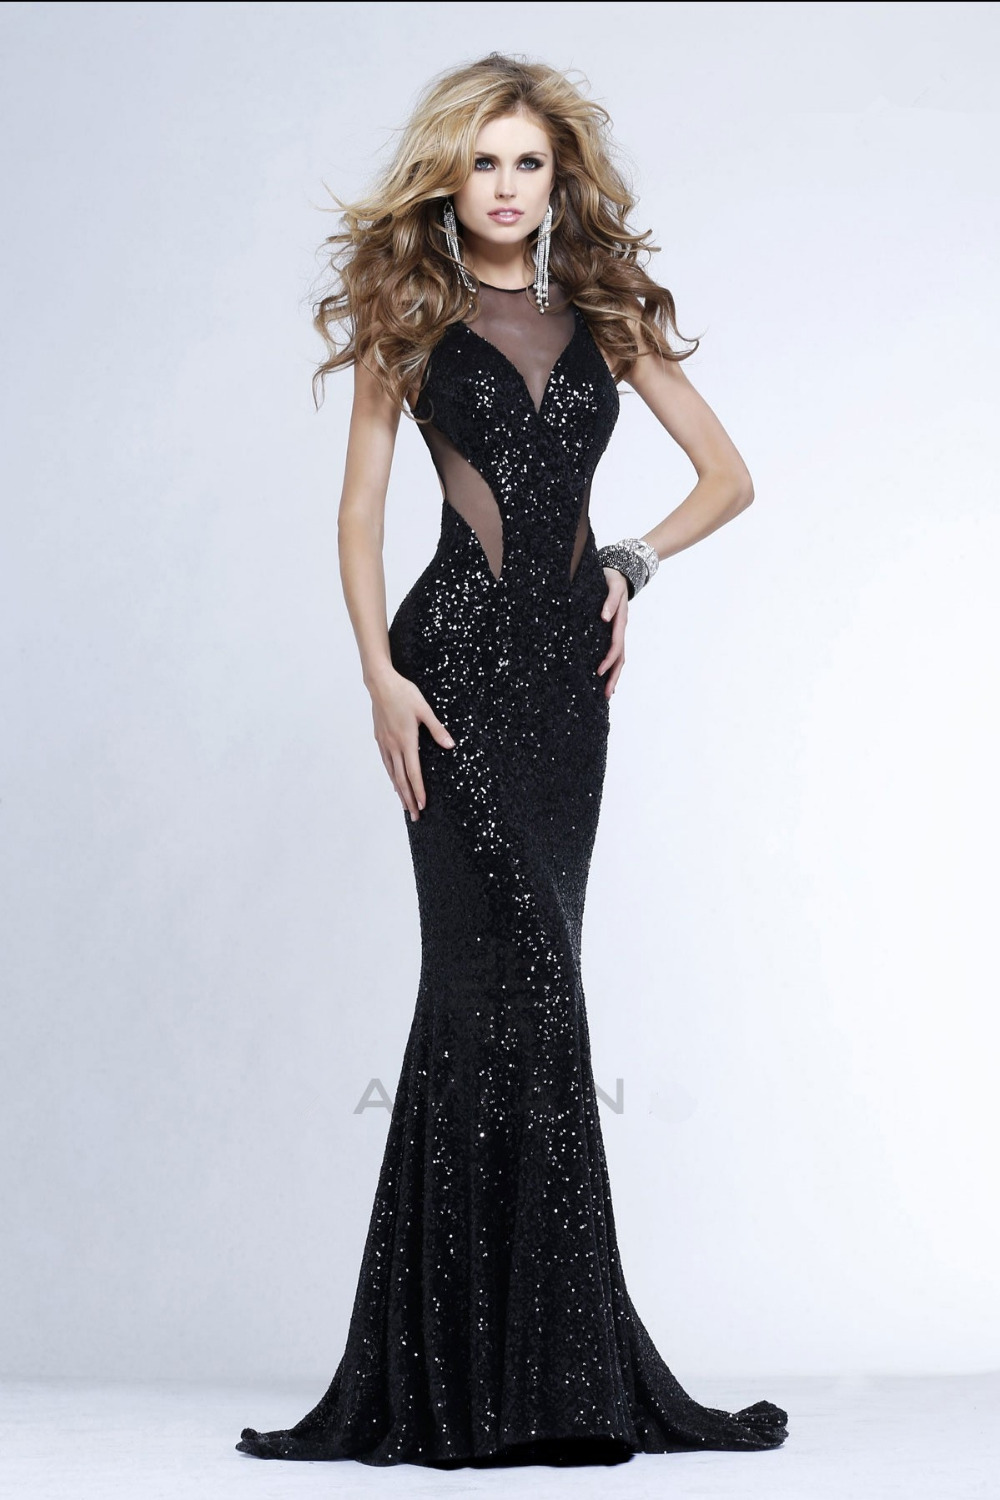 Aliexpress.com : Buy 2013 Amazing Actual Picture Hot Selling Sexy Deep V Neck Open Back Backless Crystal Lace Mermaid Wedding Dresses FE2018 from Reliable mermaid wedding dresses 2010 suppliers on Suzhou Babyonlinedress Co.,Ltd